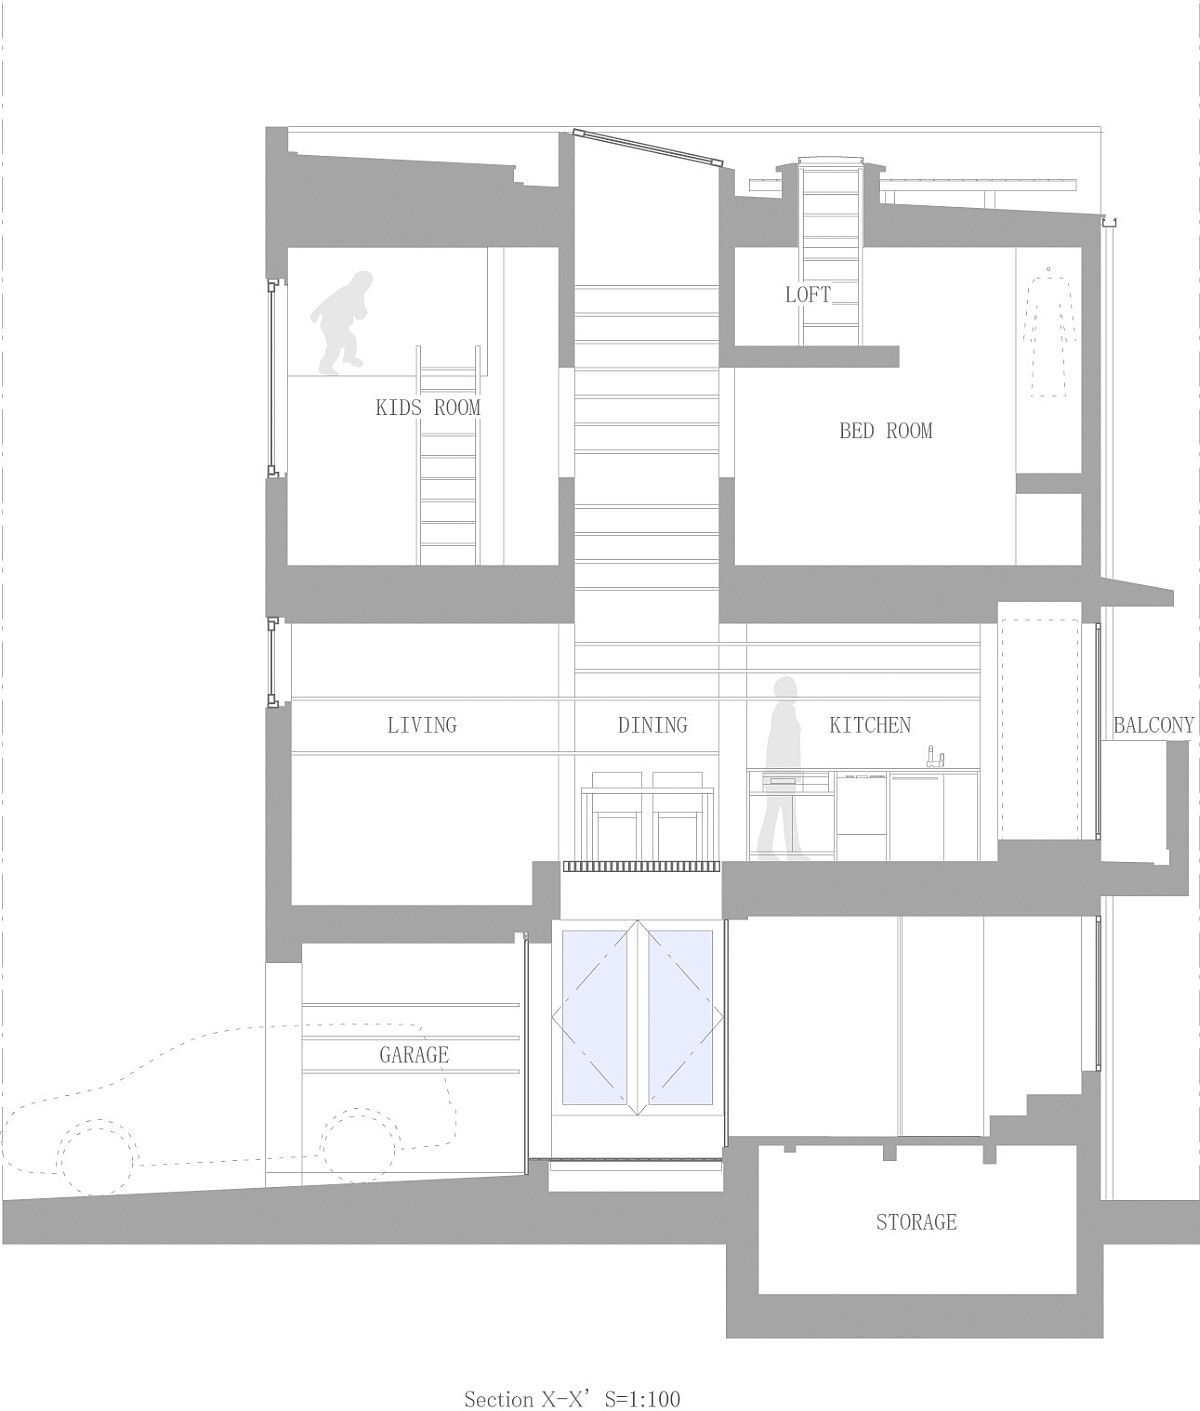 Floor plan of House in Nada